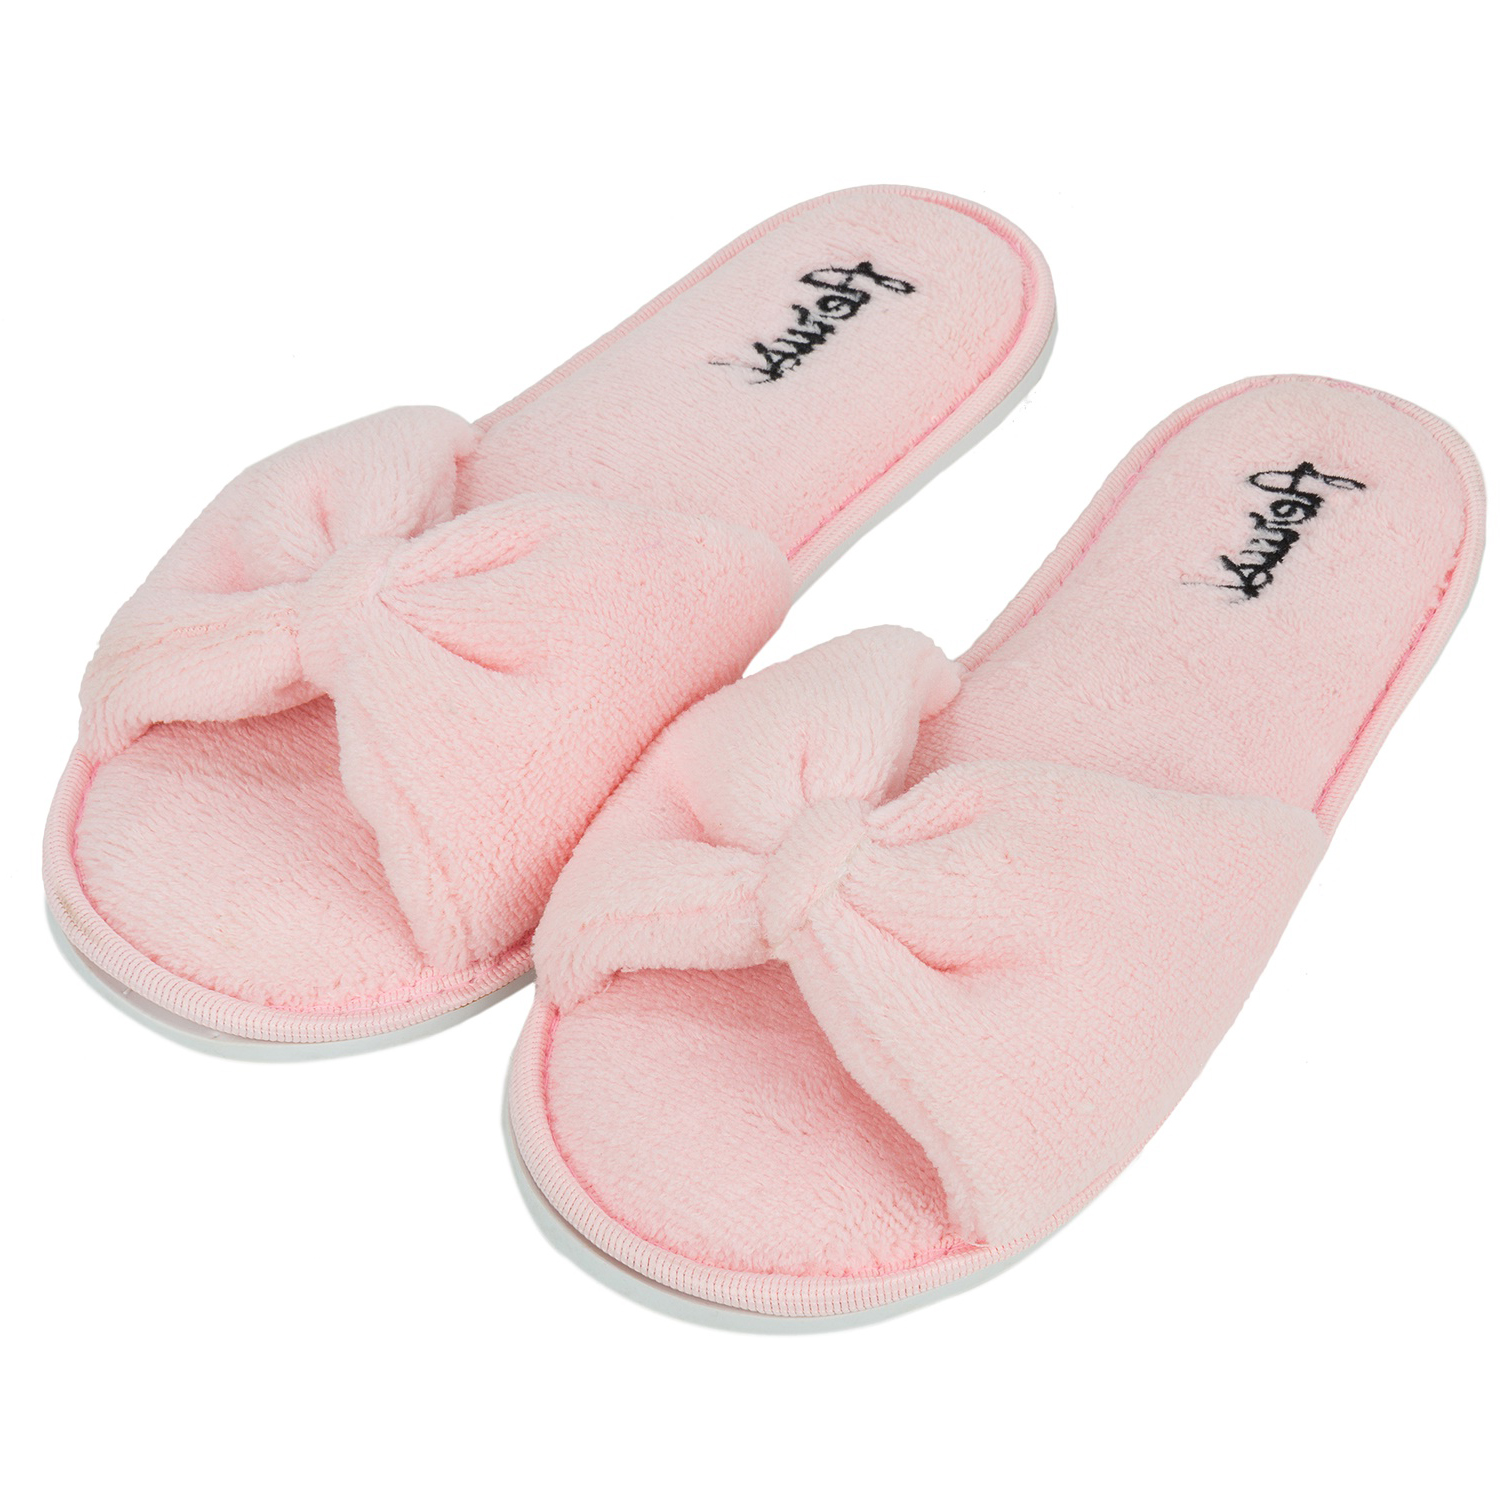 pink bowknot women s open toe cozy slide spa slipper 13874 | 4105871b 7f95 4ee2 9a10 45dcfa442c14